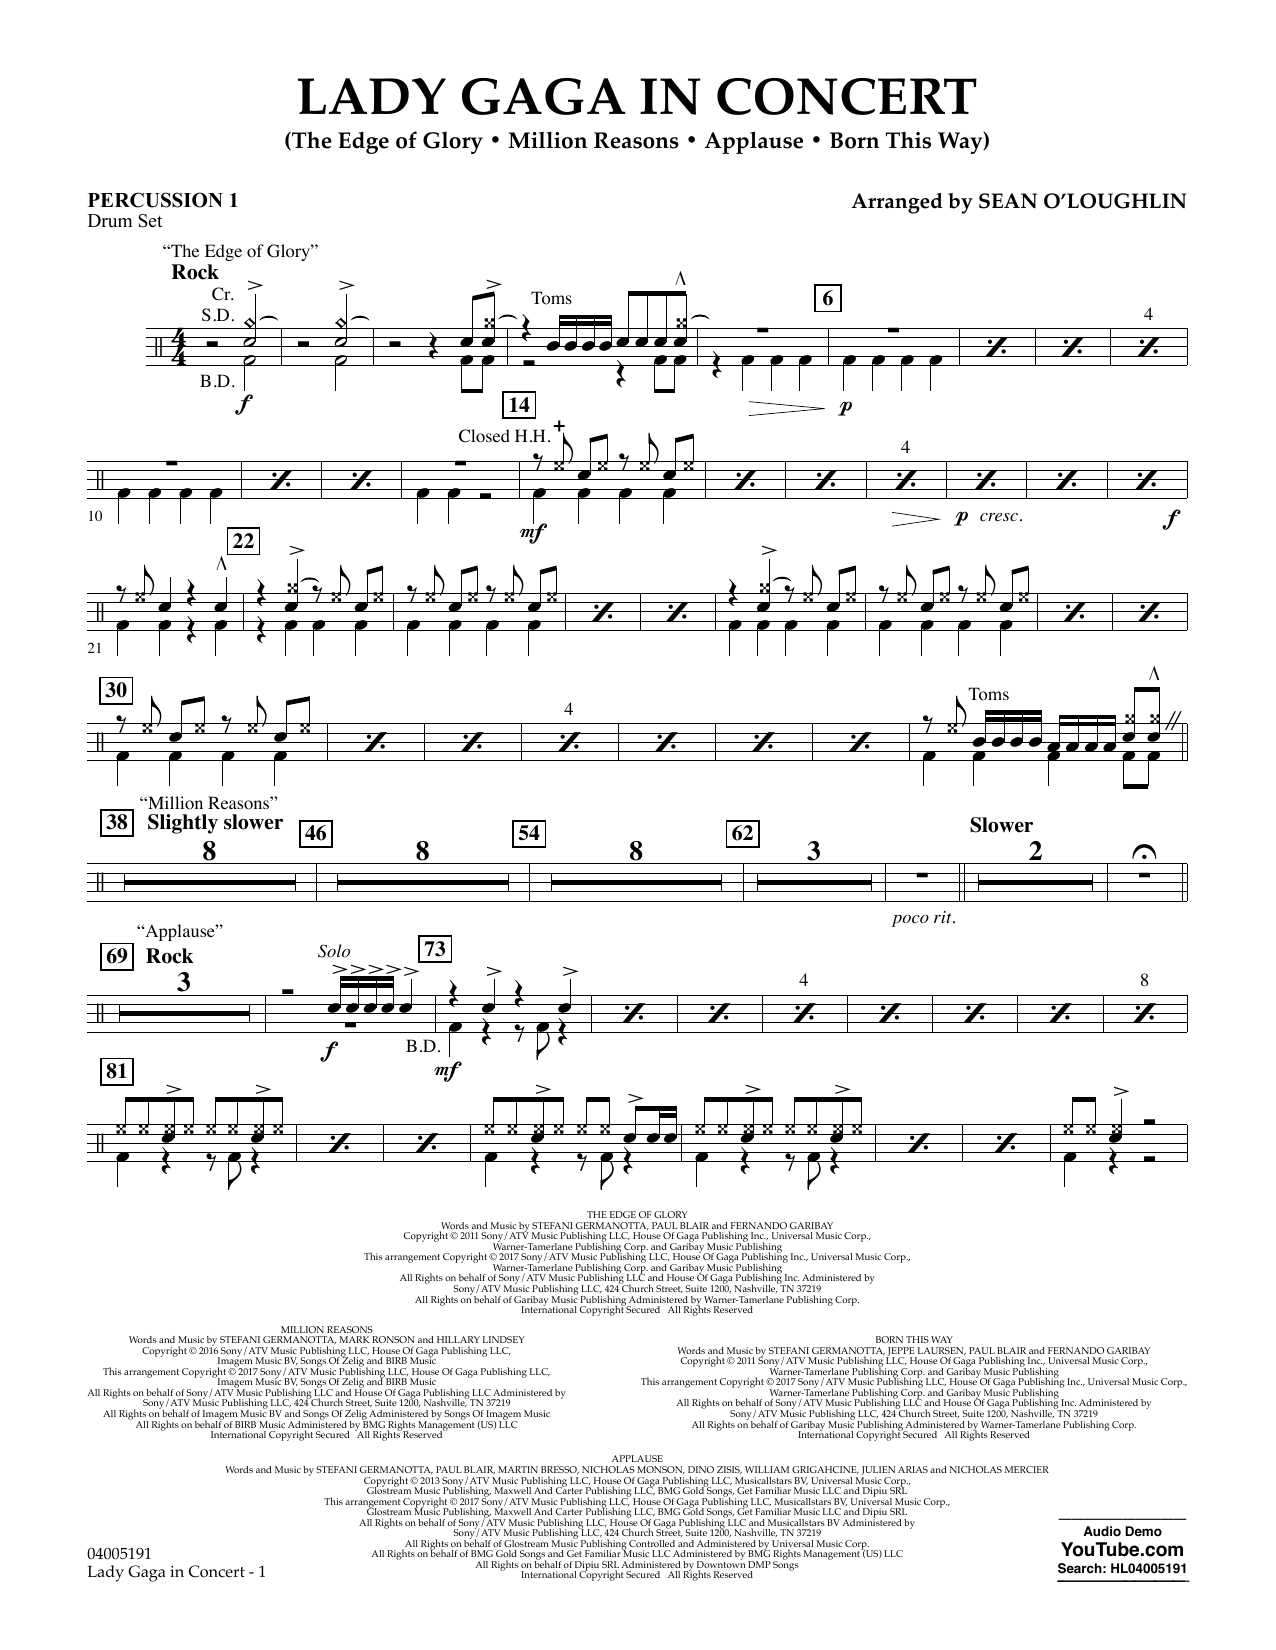 Lady Gaga in Concert - Percussion 1 (Concert Band)